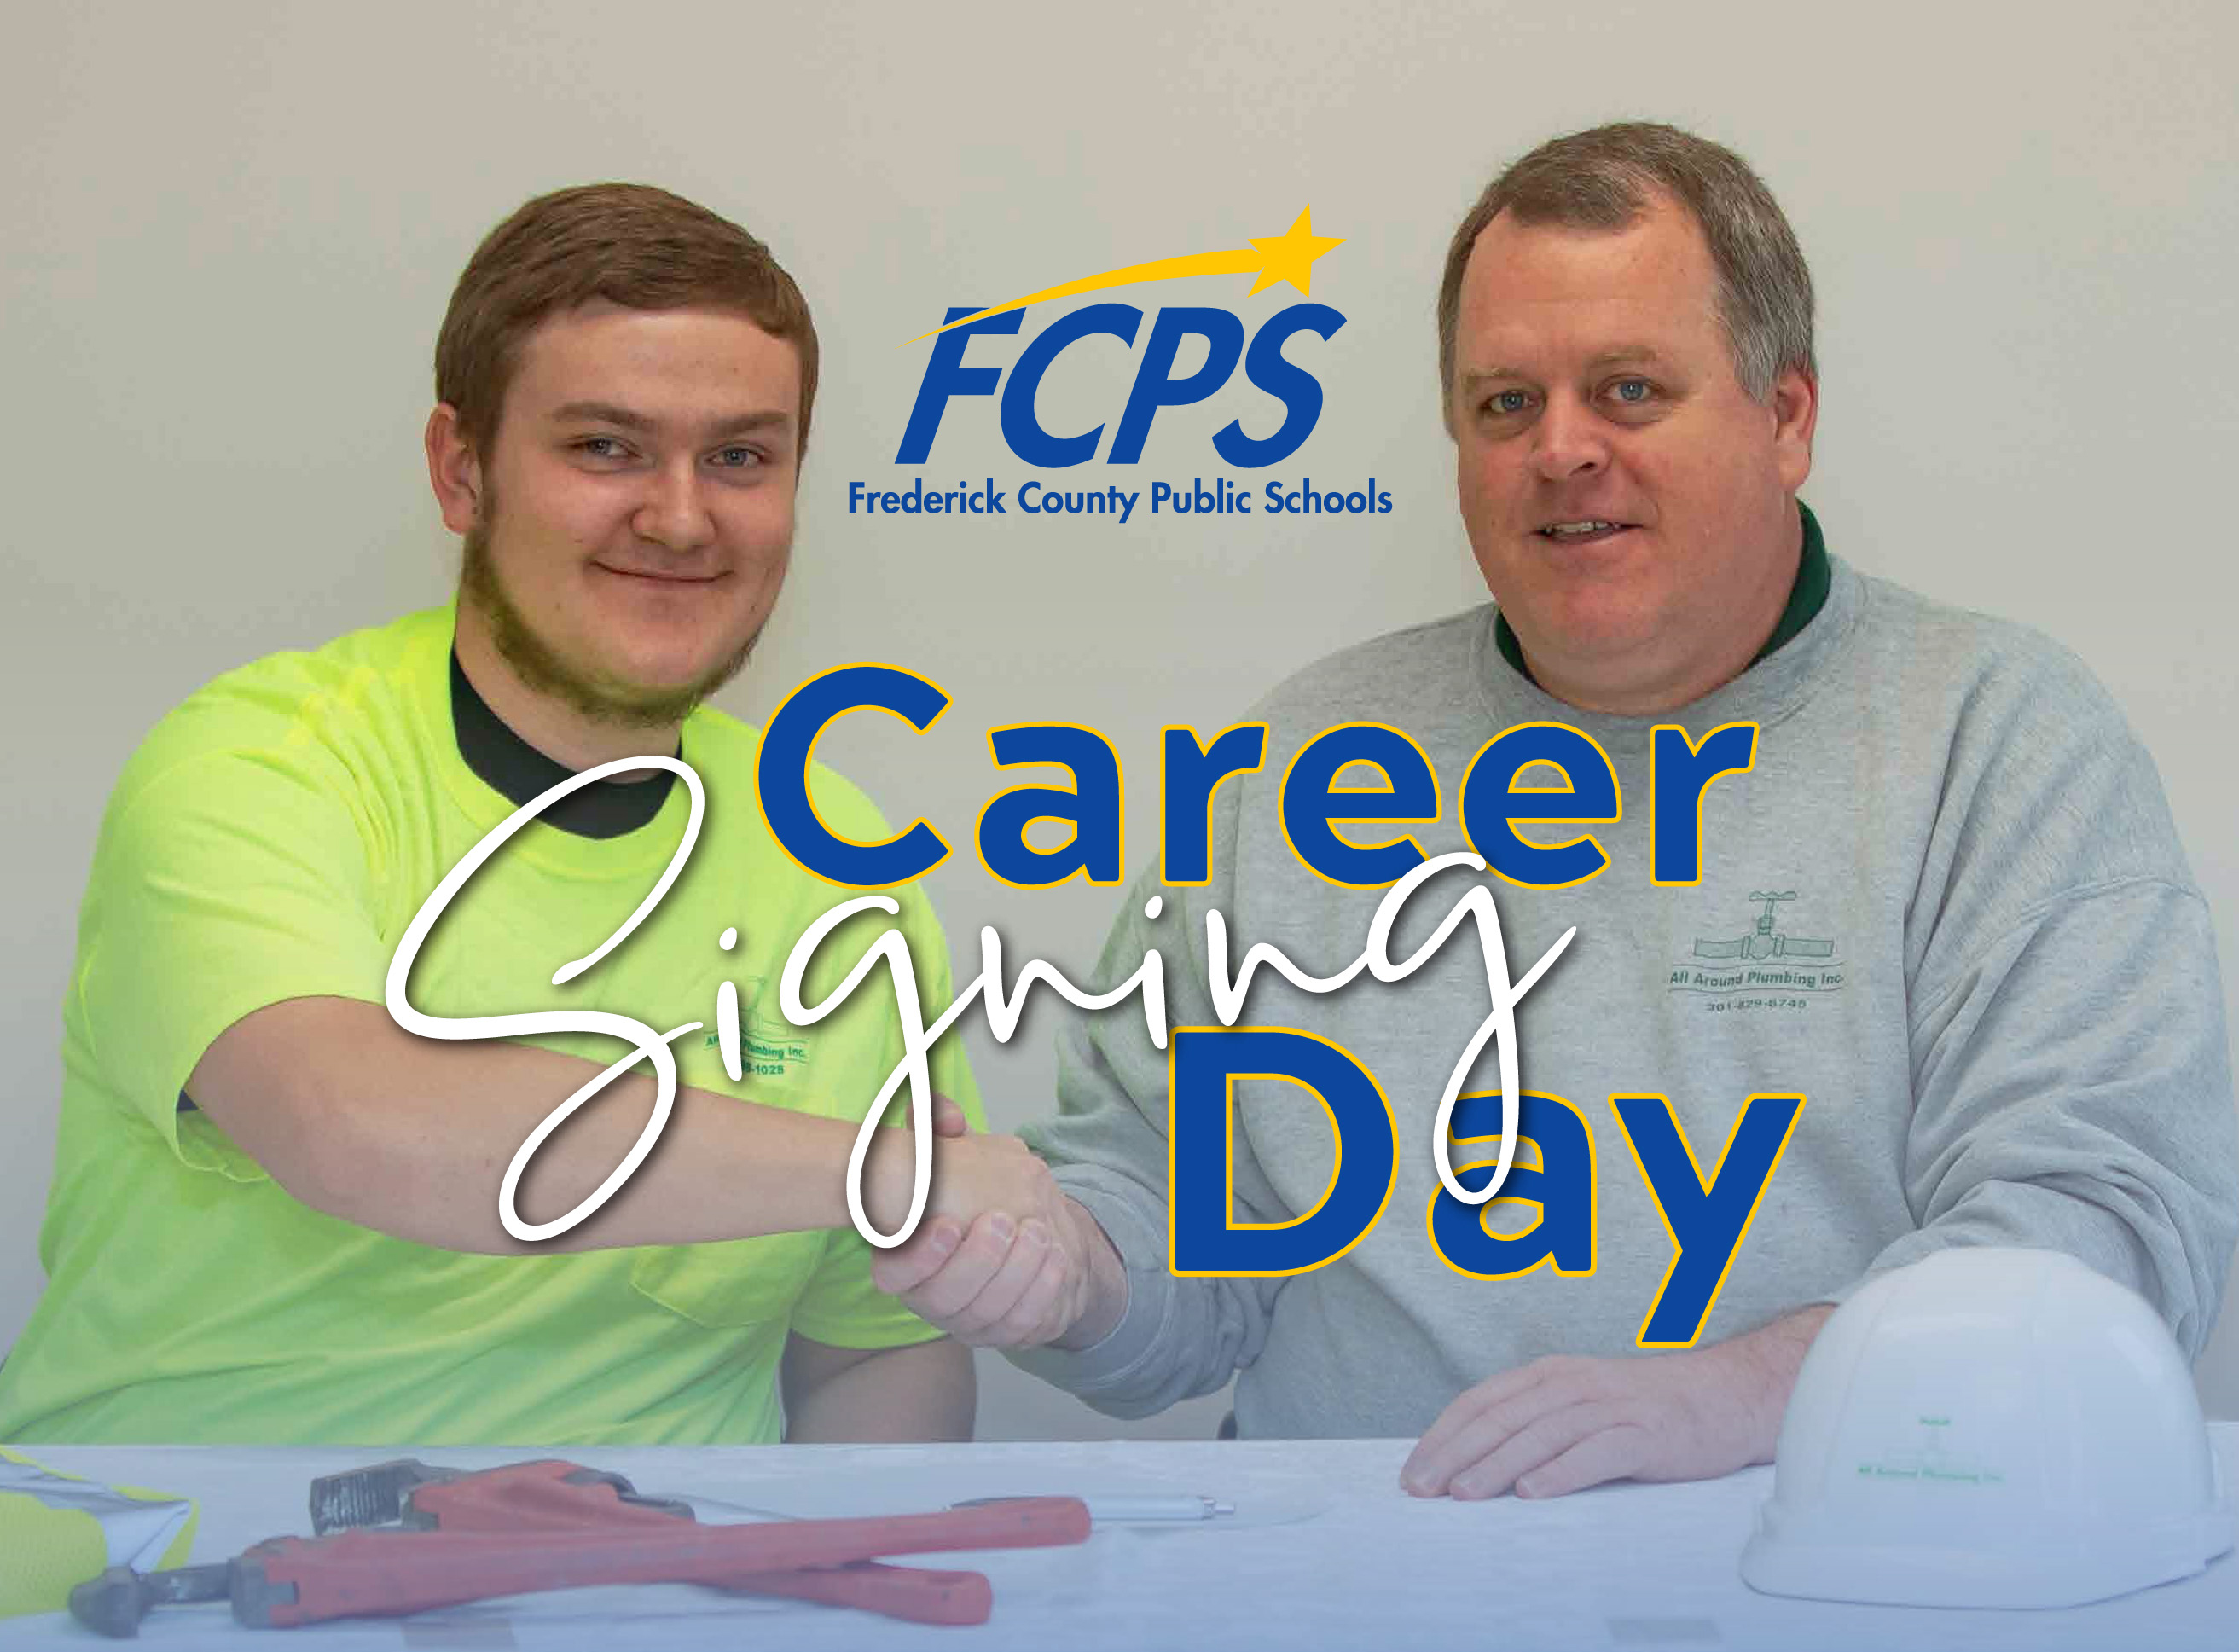 Career Signing Day